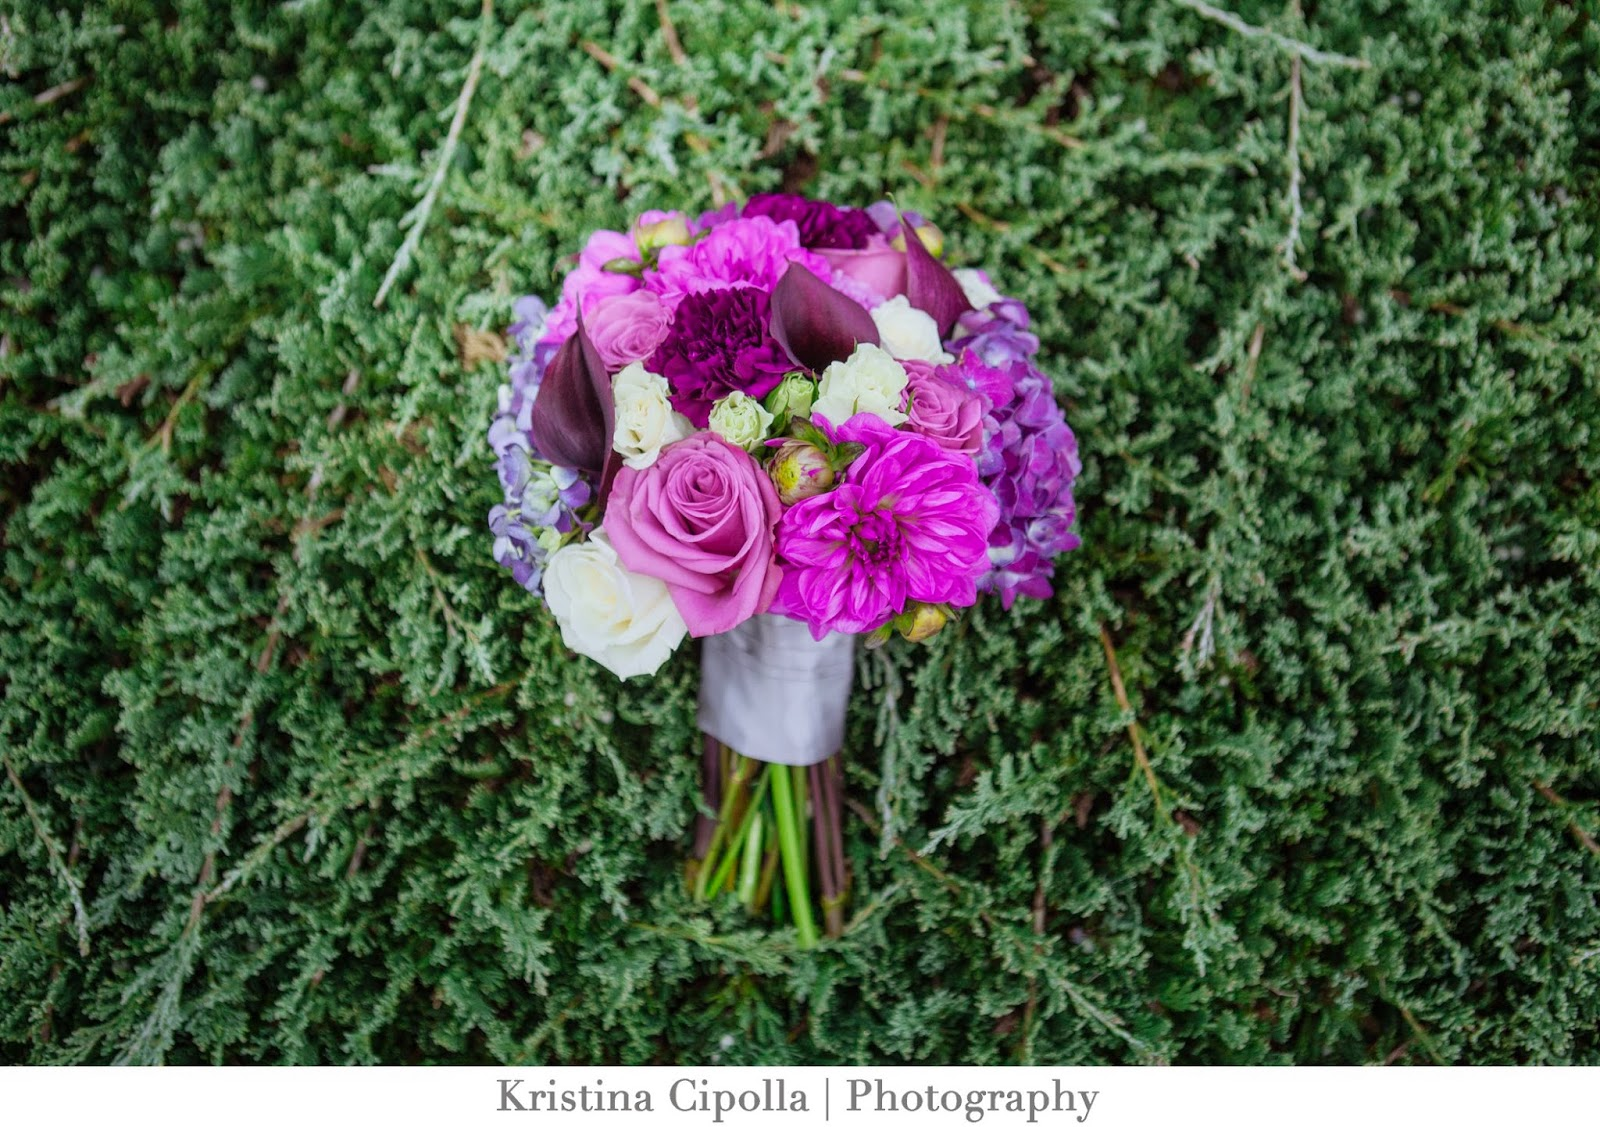 Kristina Cipolla Photography, St. Louis Wedding Photographer, Belleville IL Wedding Photographer